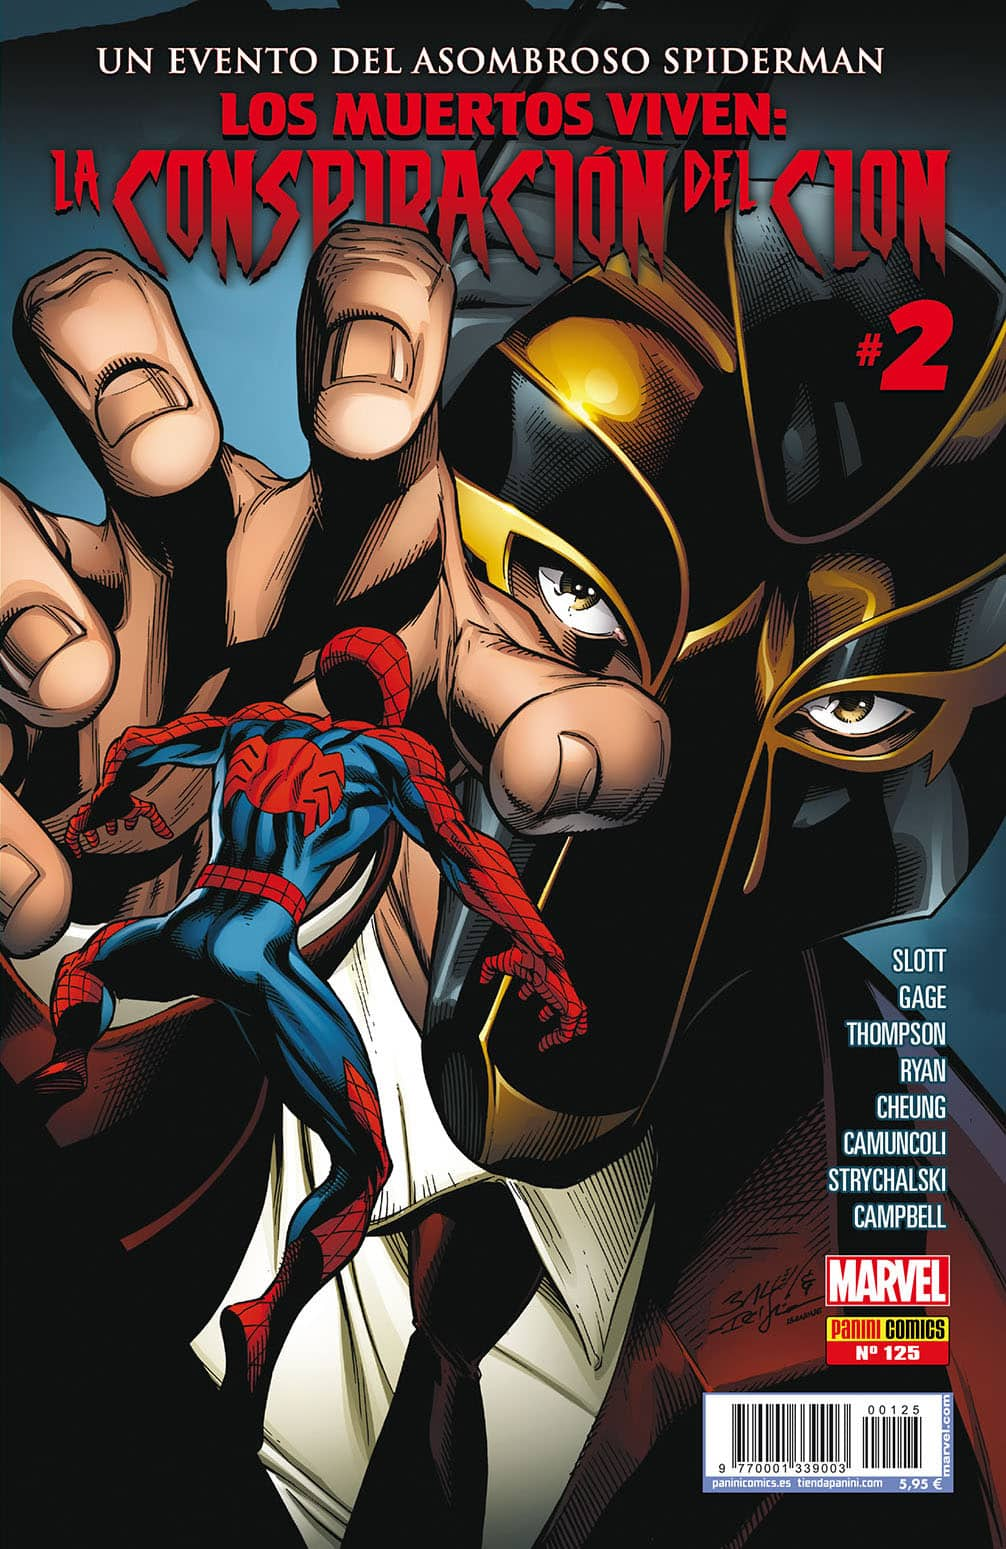 EL ASOMBROSO SPIDERMAN 125. PORTADA ALTERNATIVA